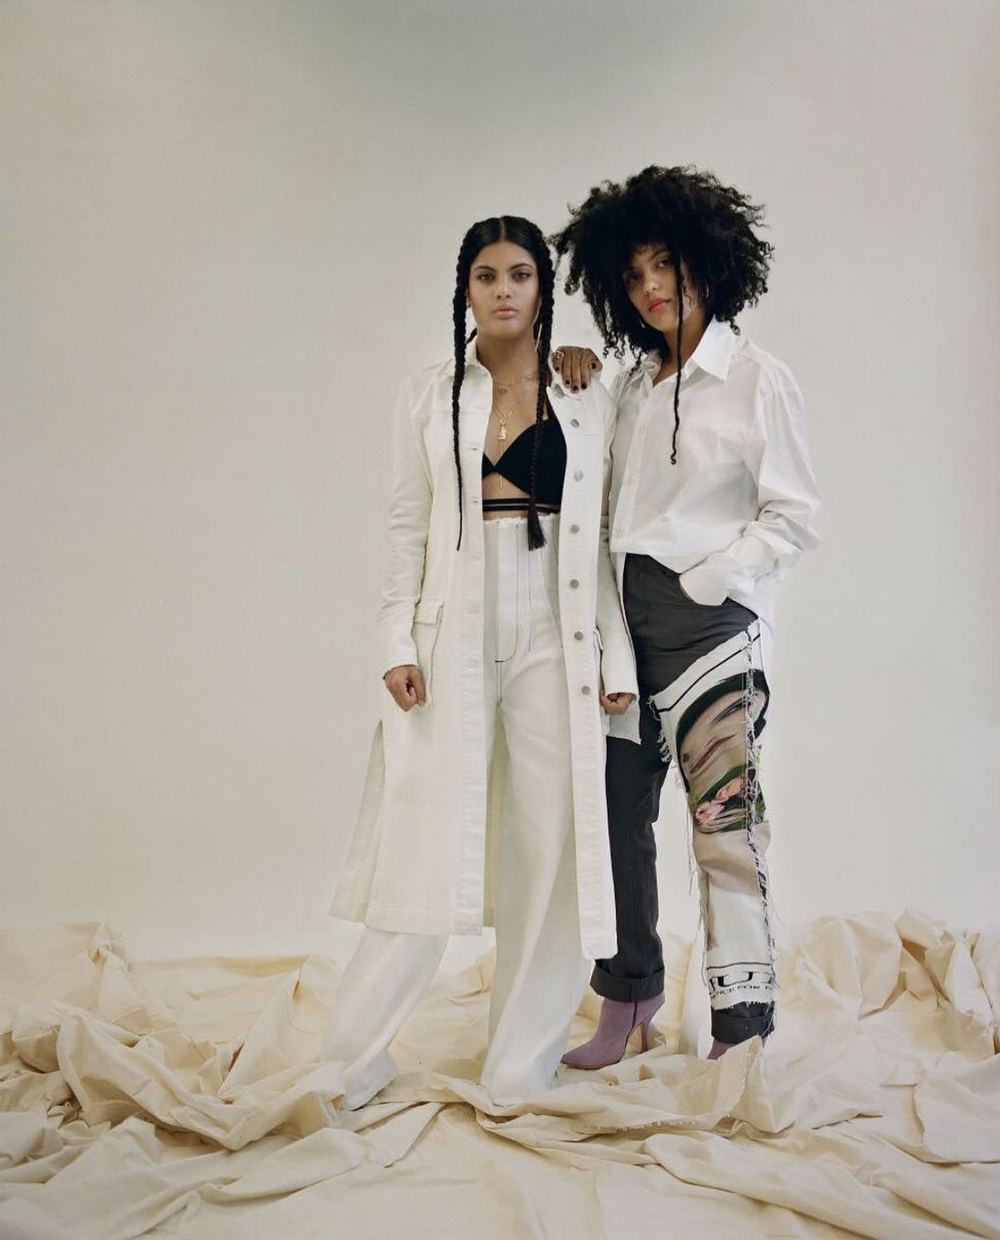 NOTION+_+IBEYI+_+HAIR+BRADY+LEA+_+MAKEUP+REBEKAH+LIDSTONE.png